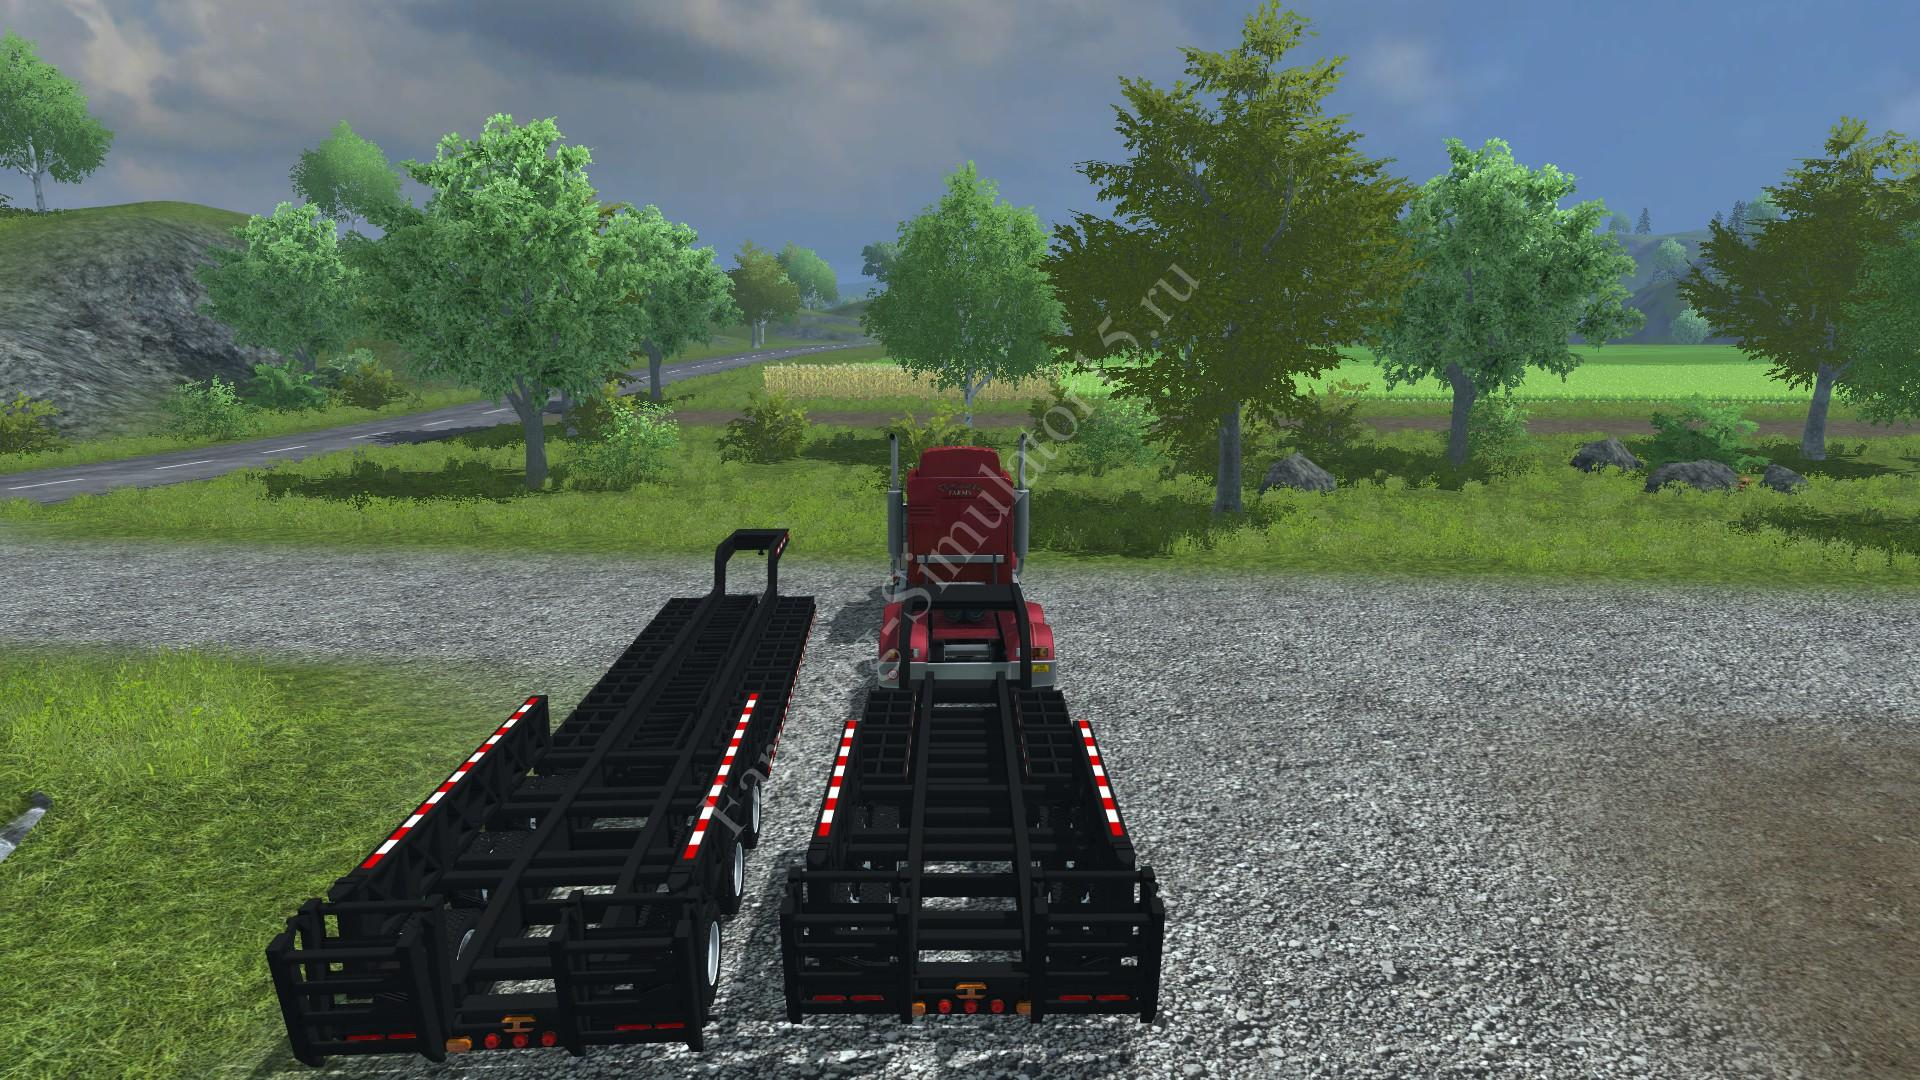 Мод трала Trailtech CT3200 and CT220TT v 1.0 Farming Simulator 2013, Farming Simulator 13